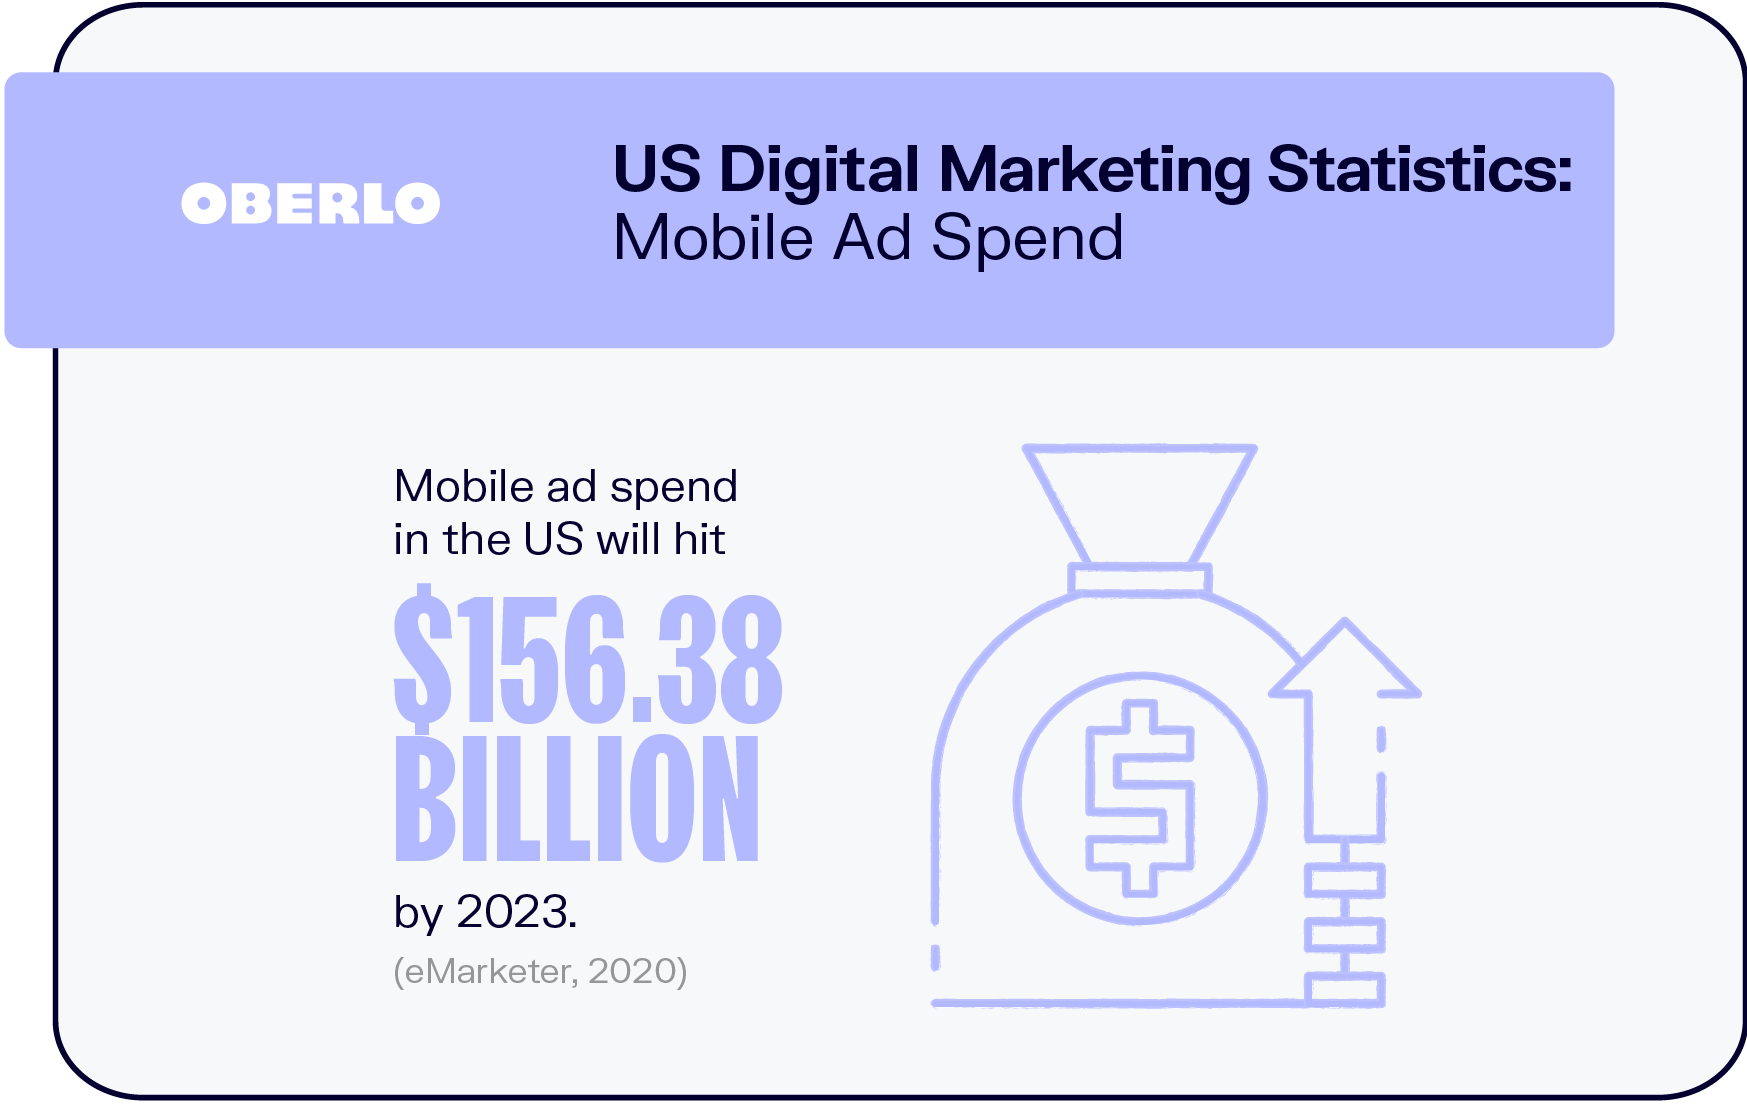 US Digital Marketing Statistics: Mobile Ad Spend